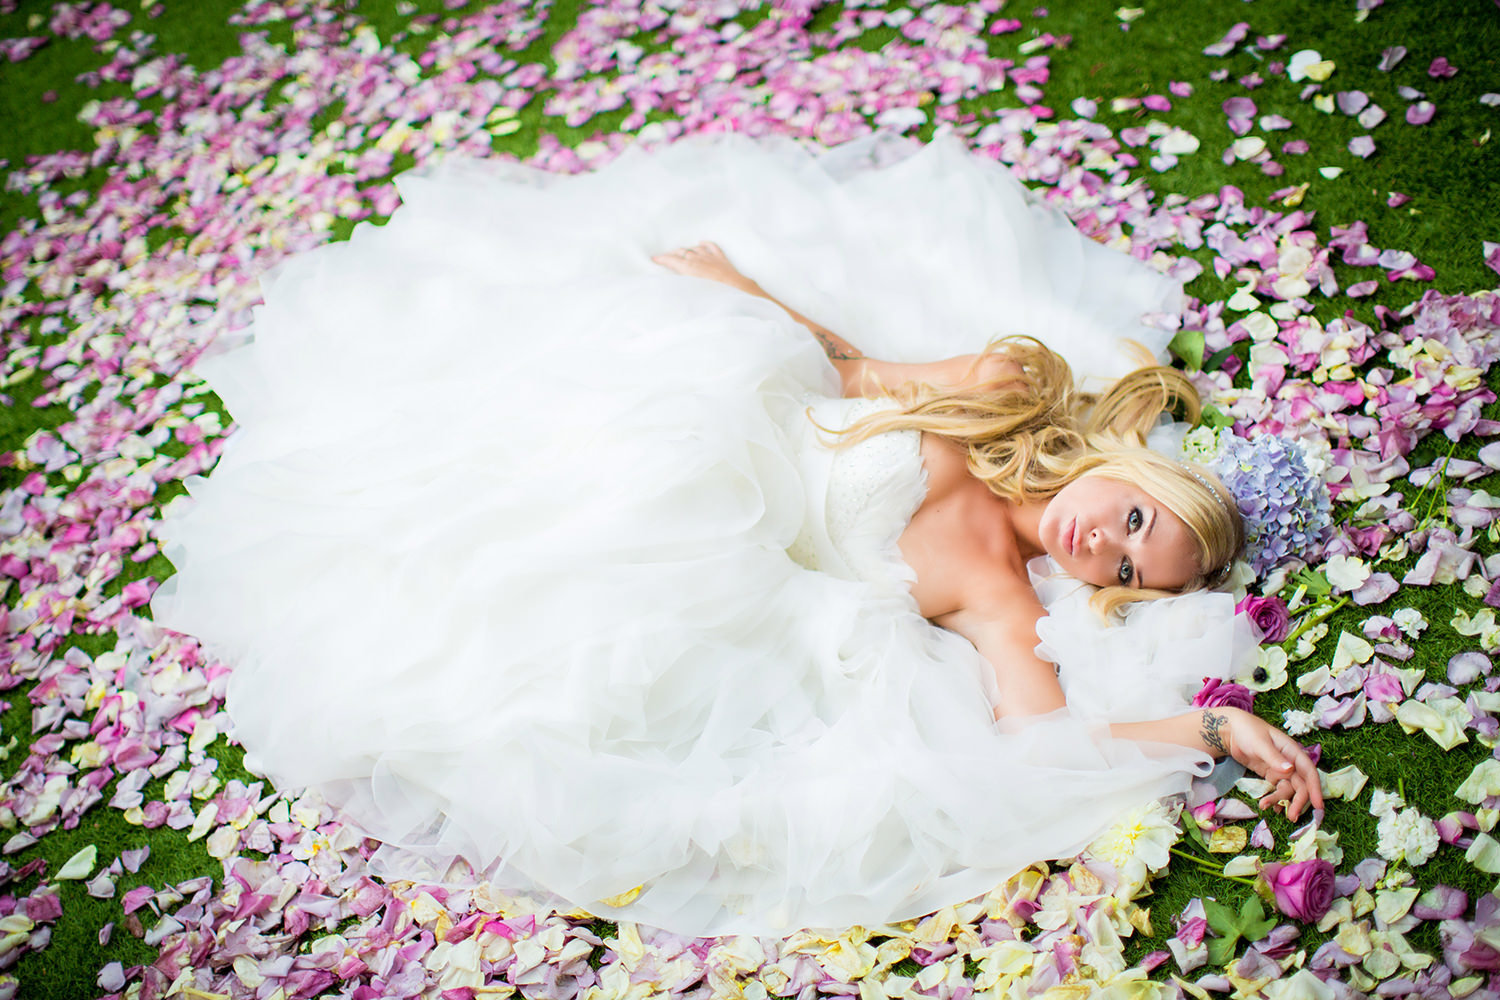 Amazing bridal portrait of bride laying on a bed of rose petals